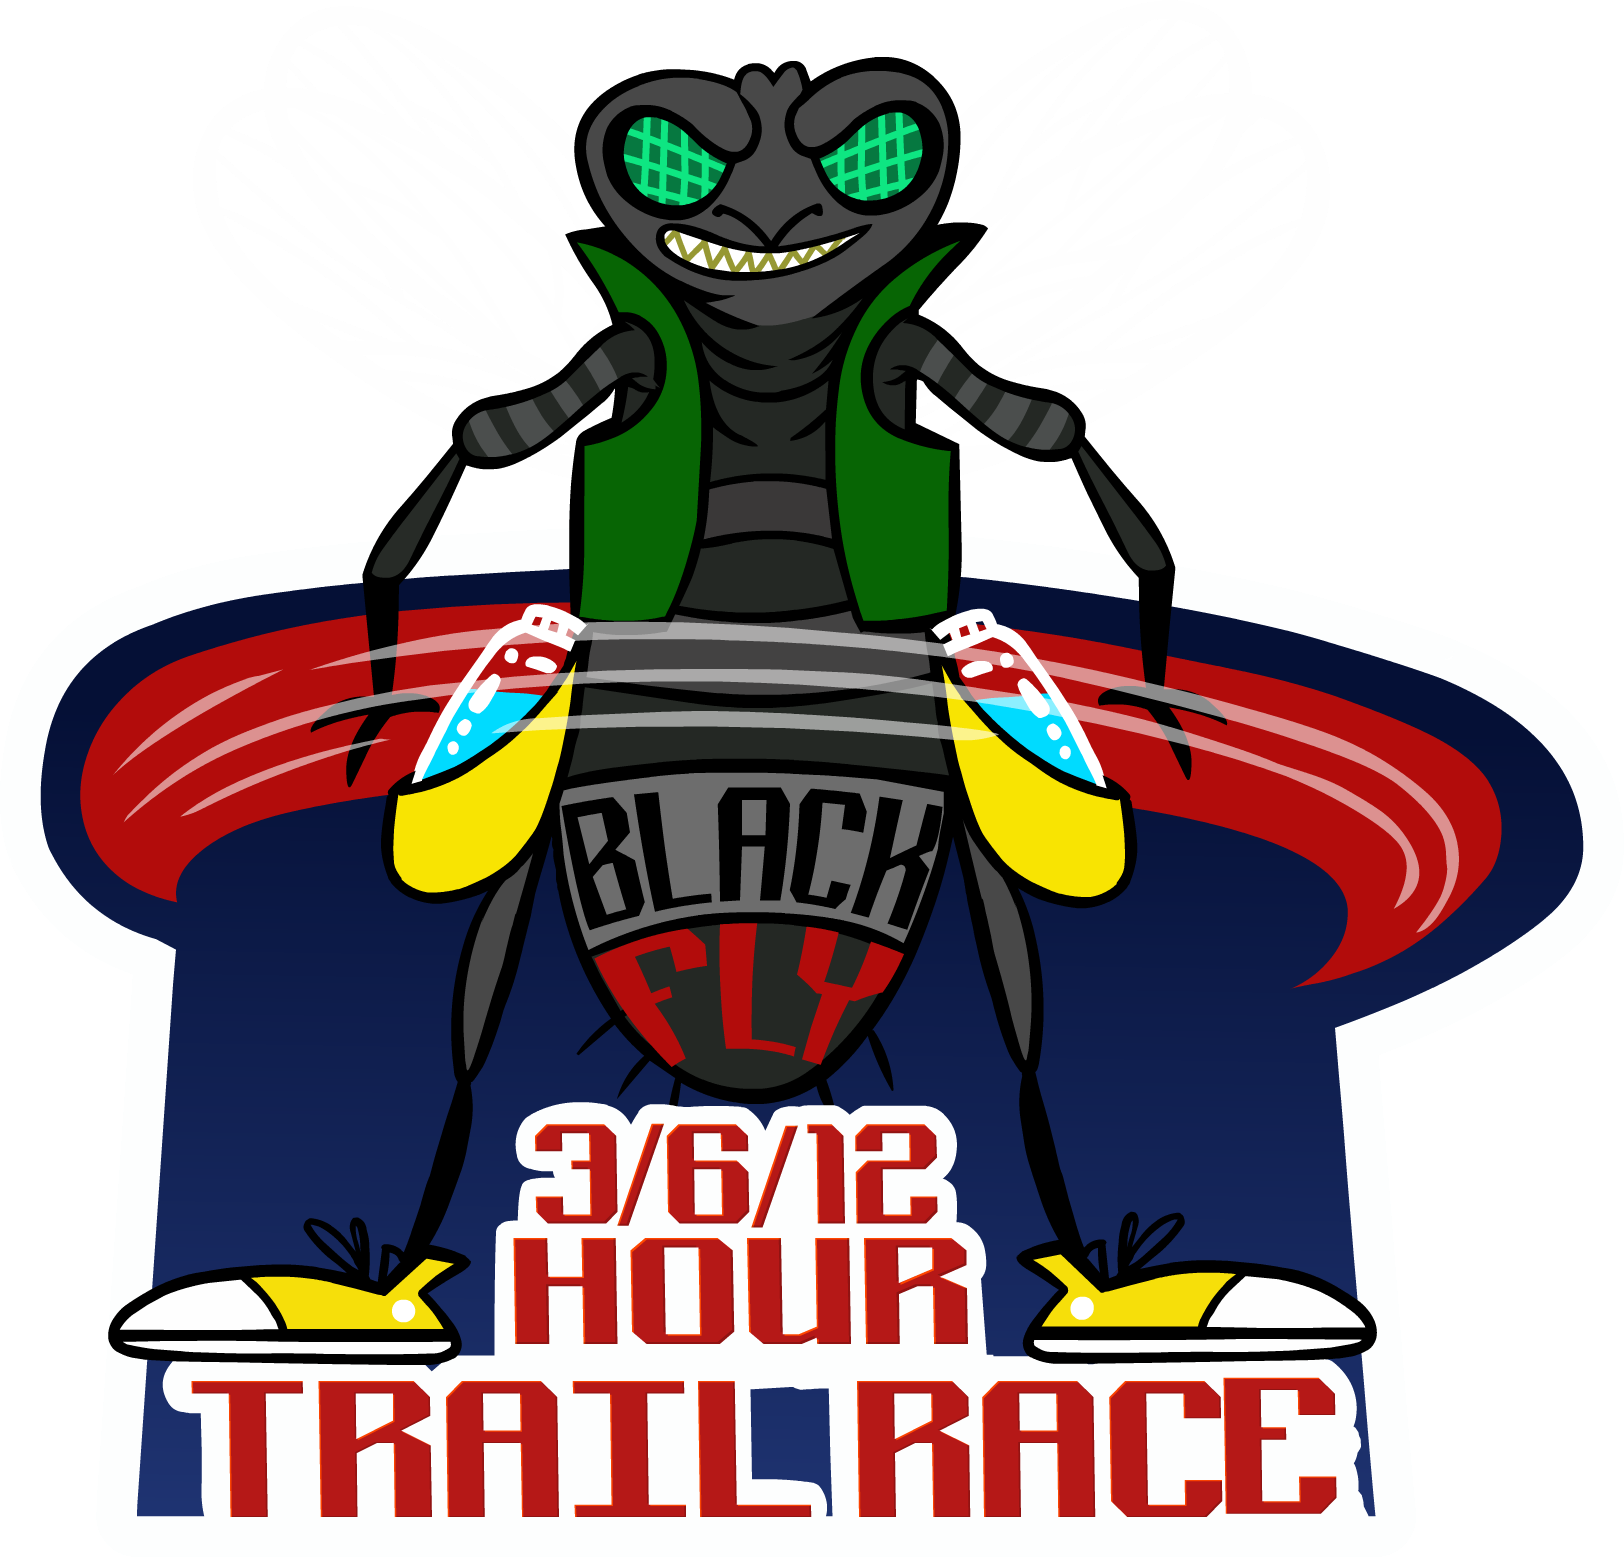 Black fly 3 6 12 24 hour trail race 3beavers racing